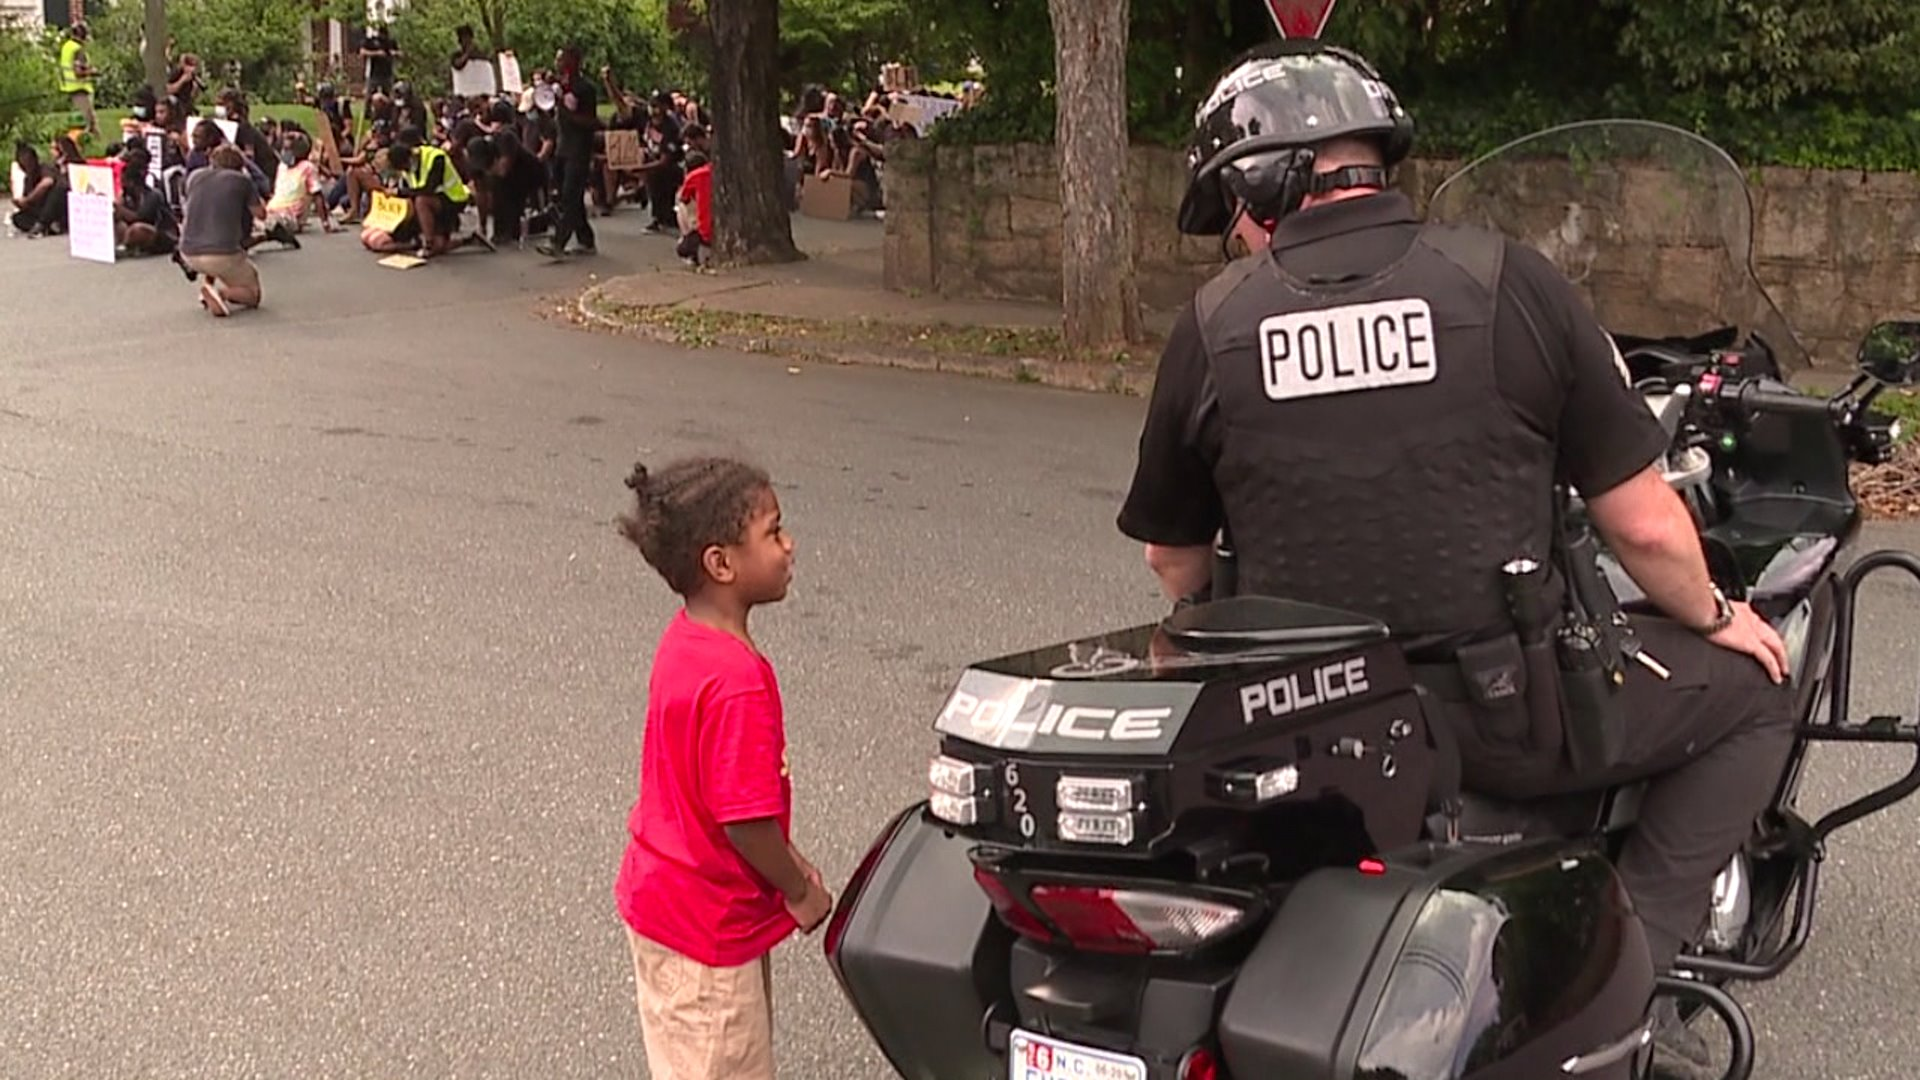 Young boy has special moment with Winston-Salem police officer during protest